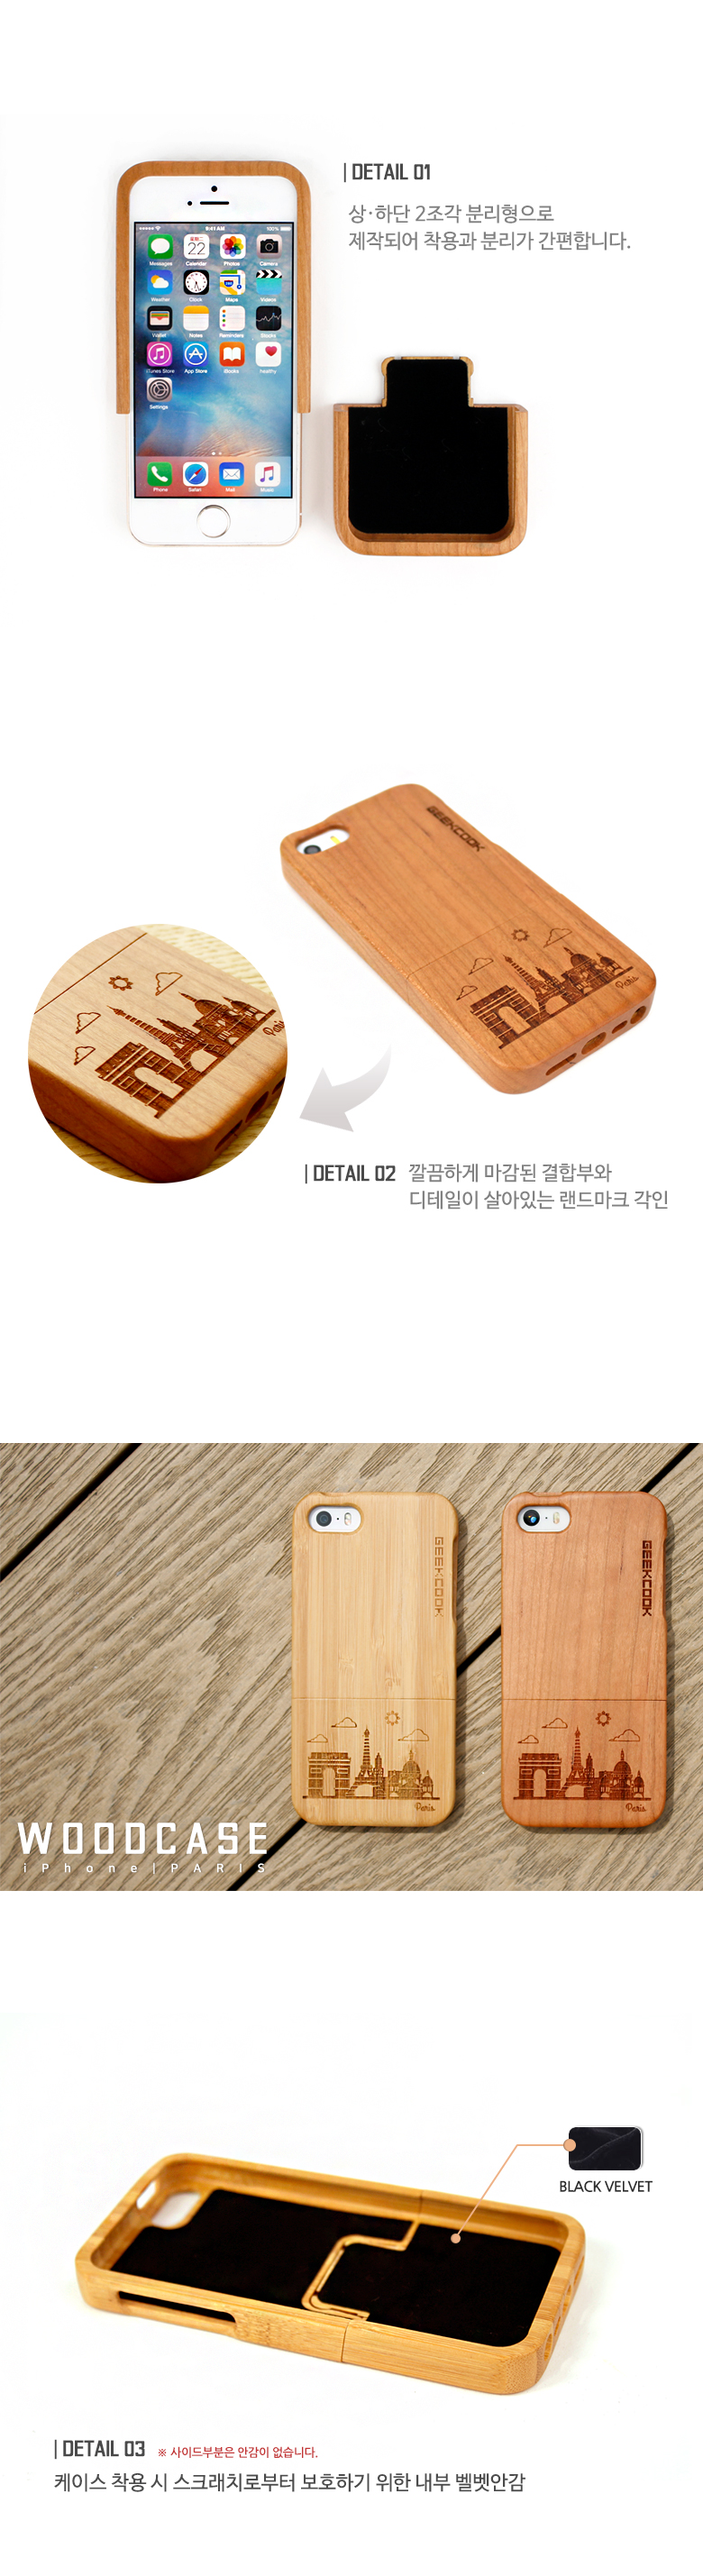 [ BISKET ] iPhone 5/5s/5se Landmark Wood Case Paris